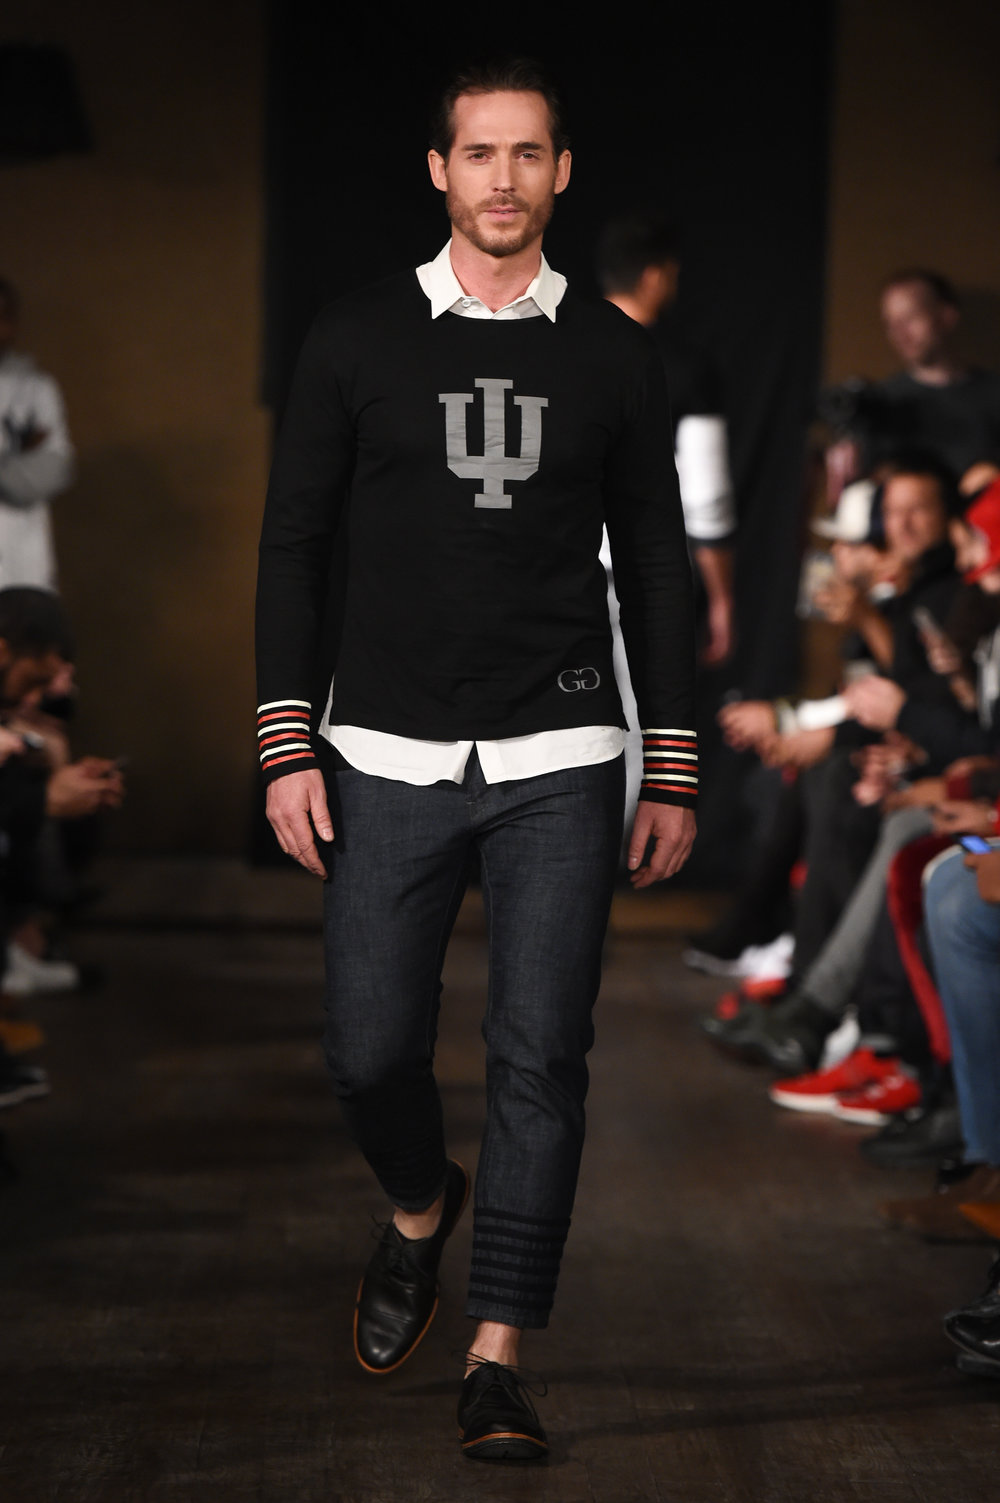 Grungy Gentleman x Indiana University 4.jpg